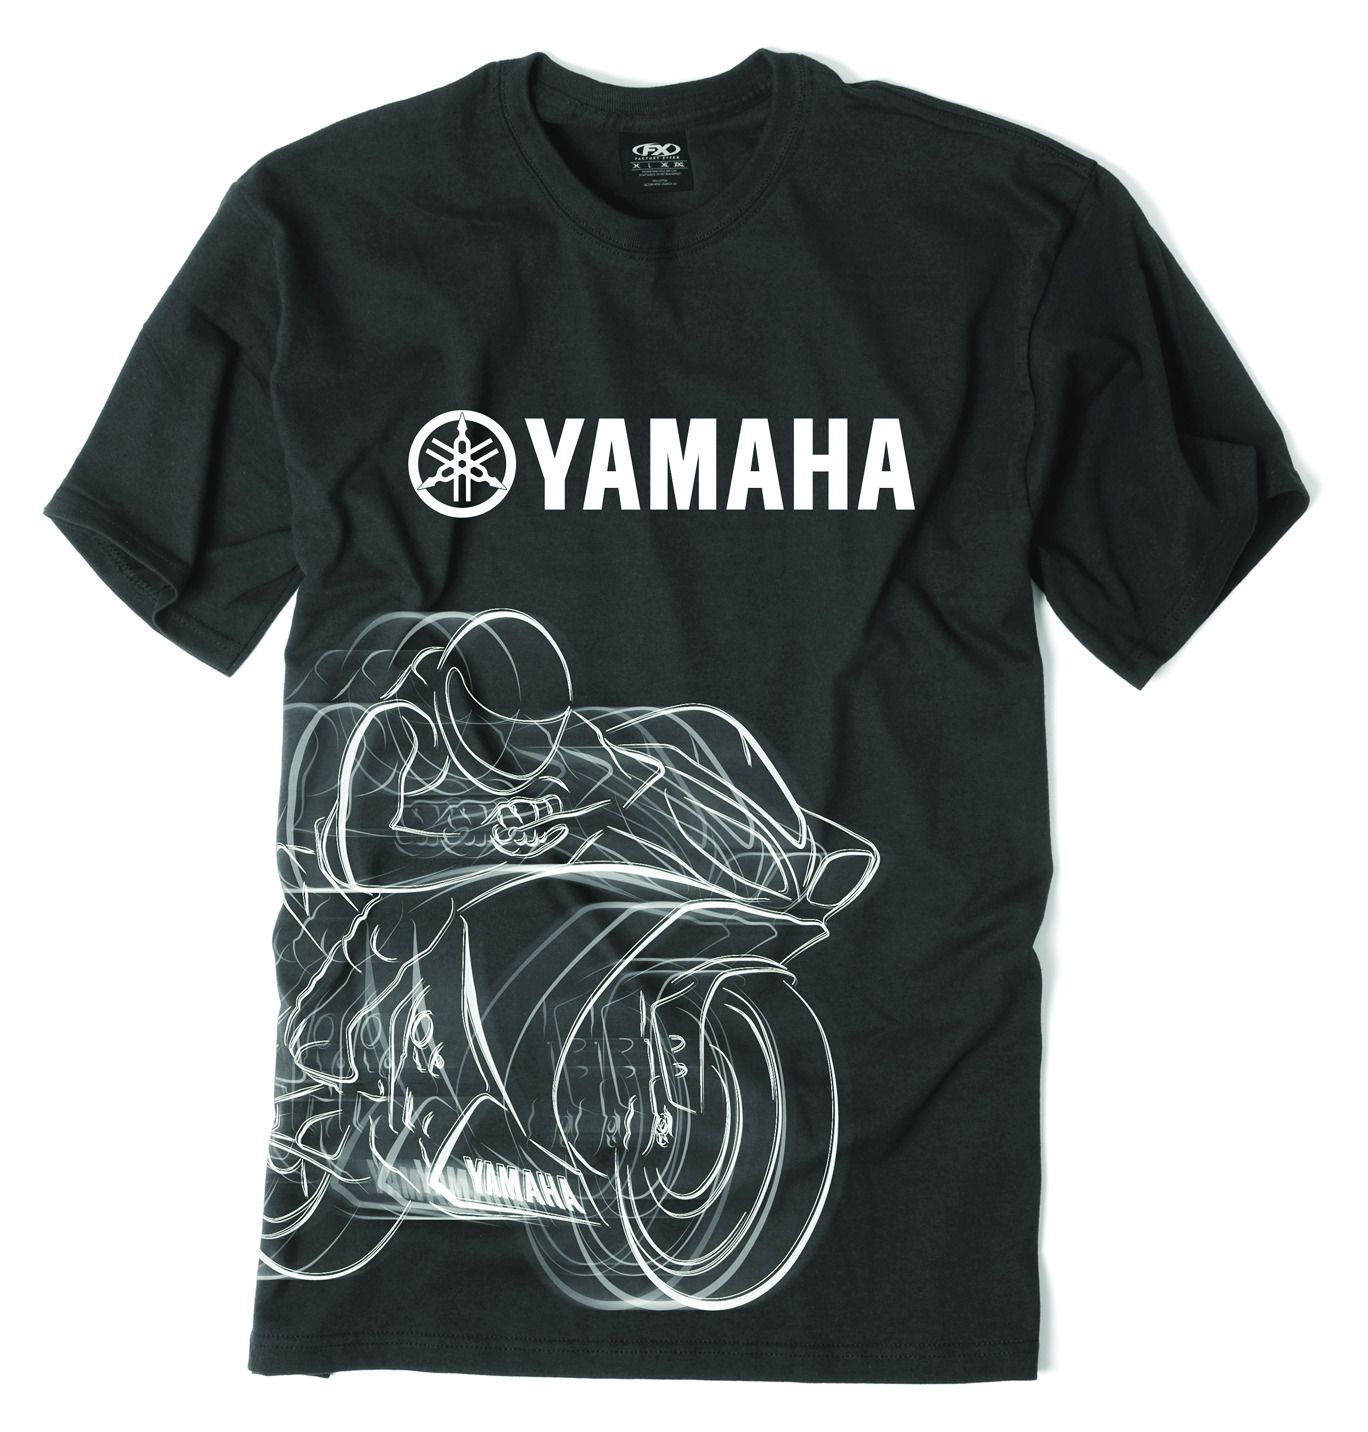 Black yamaha t shirt - Black Yamaha T Shirt 21